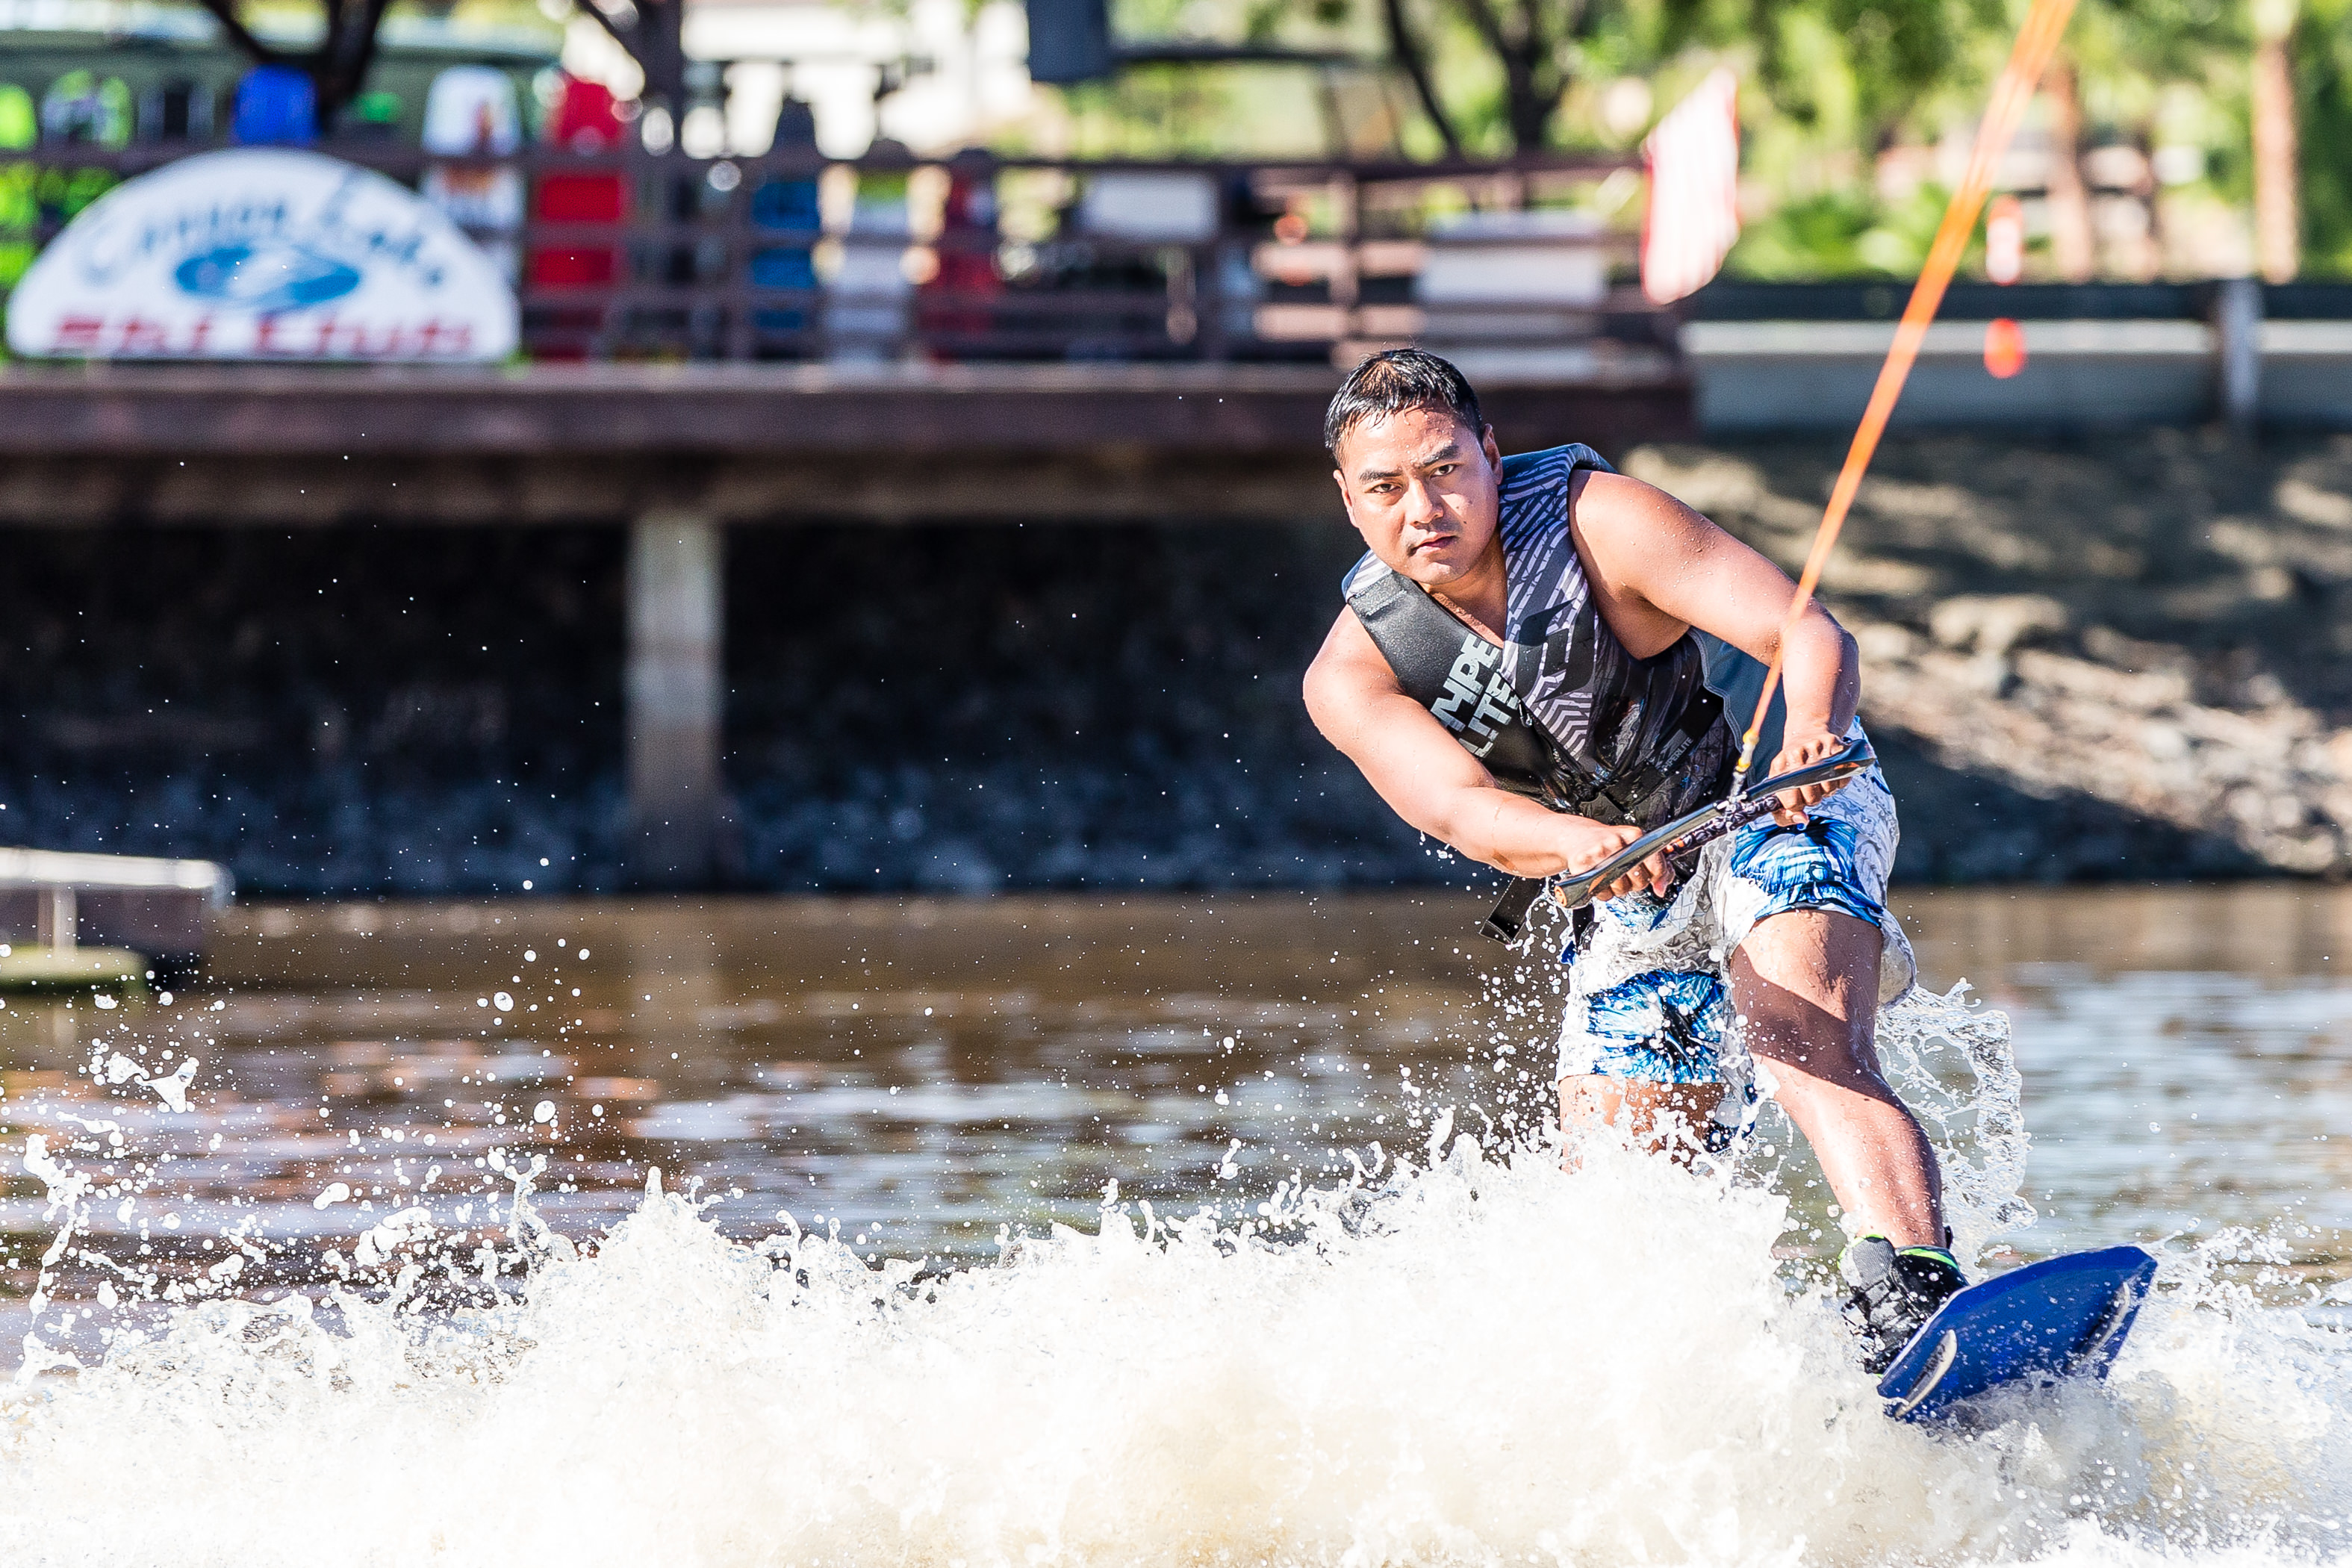 Rain and runoff doesn't deter wake boarders